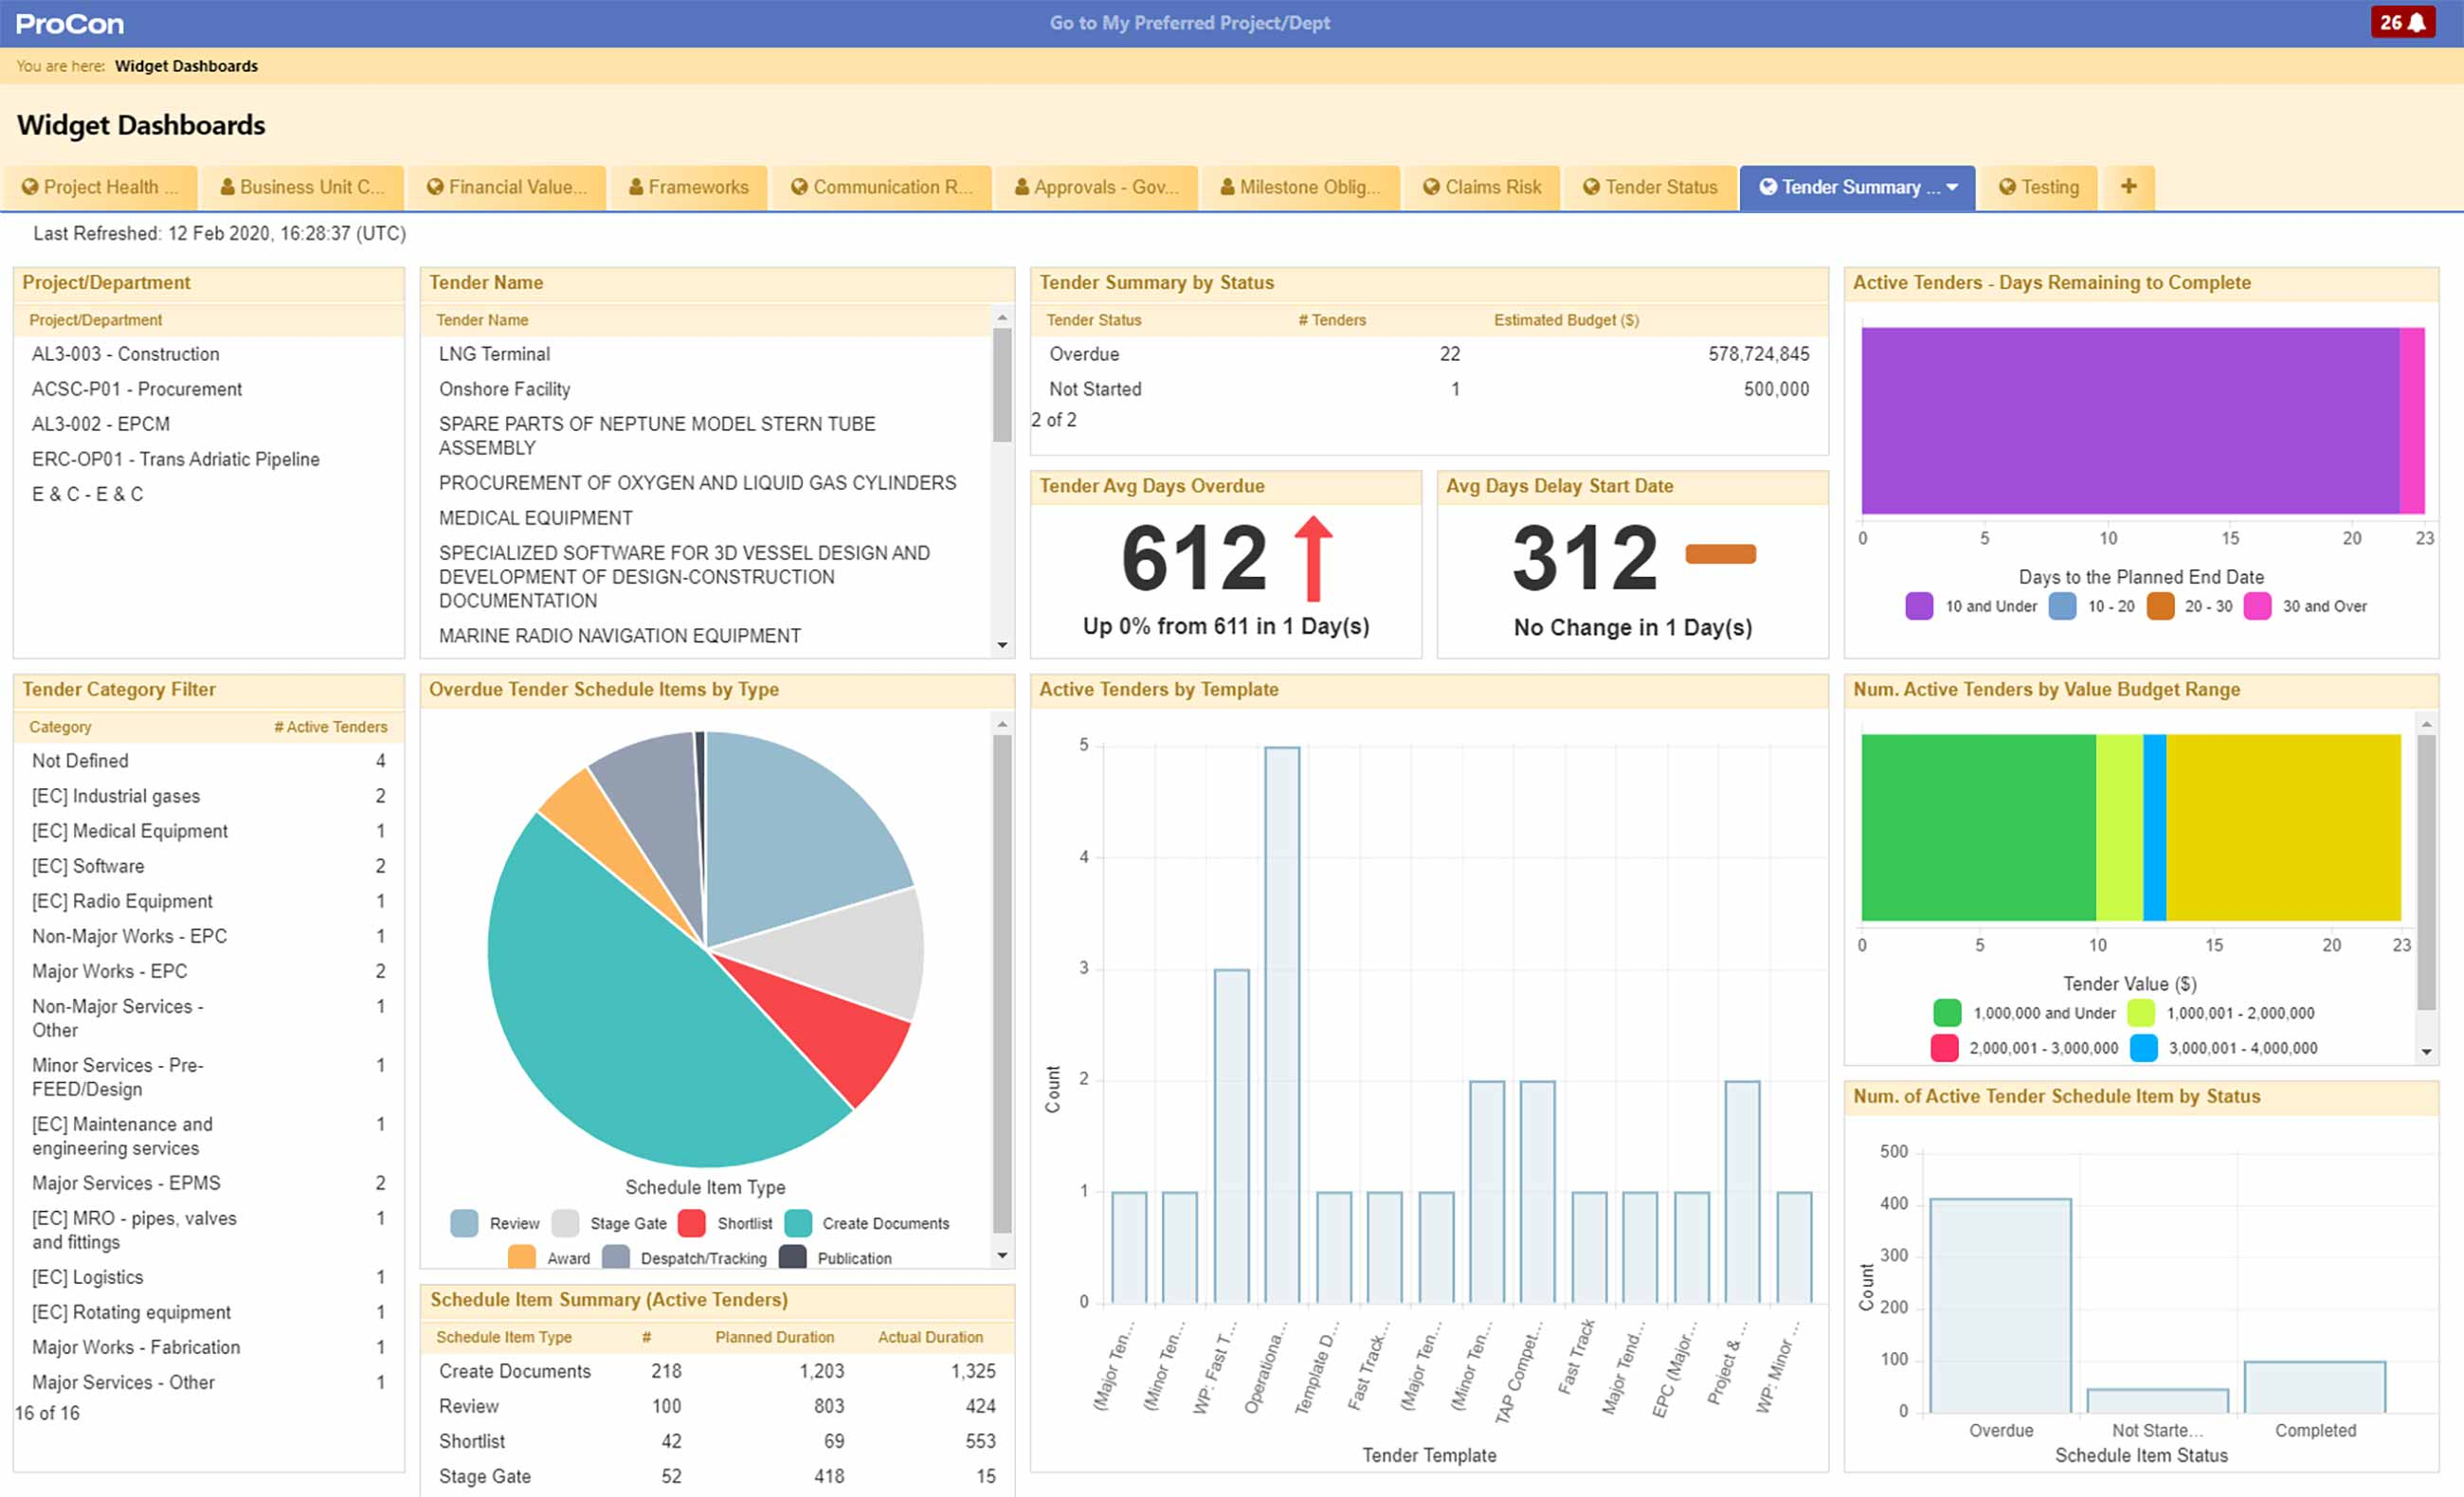 AVEVA Contract Risk Management Dashboard 2